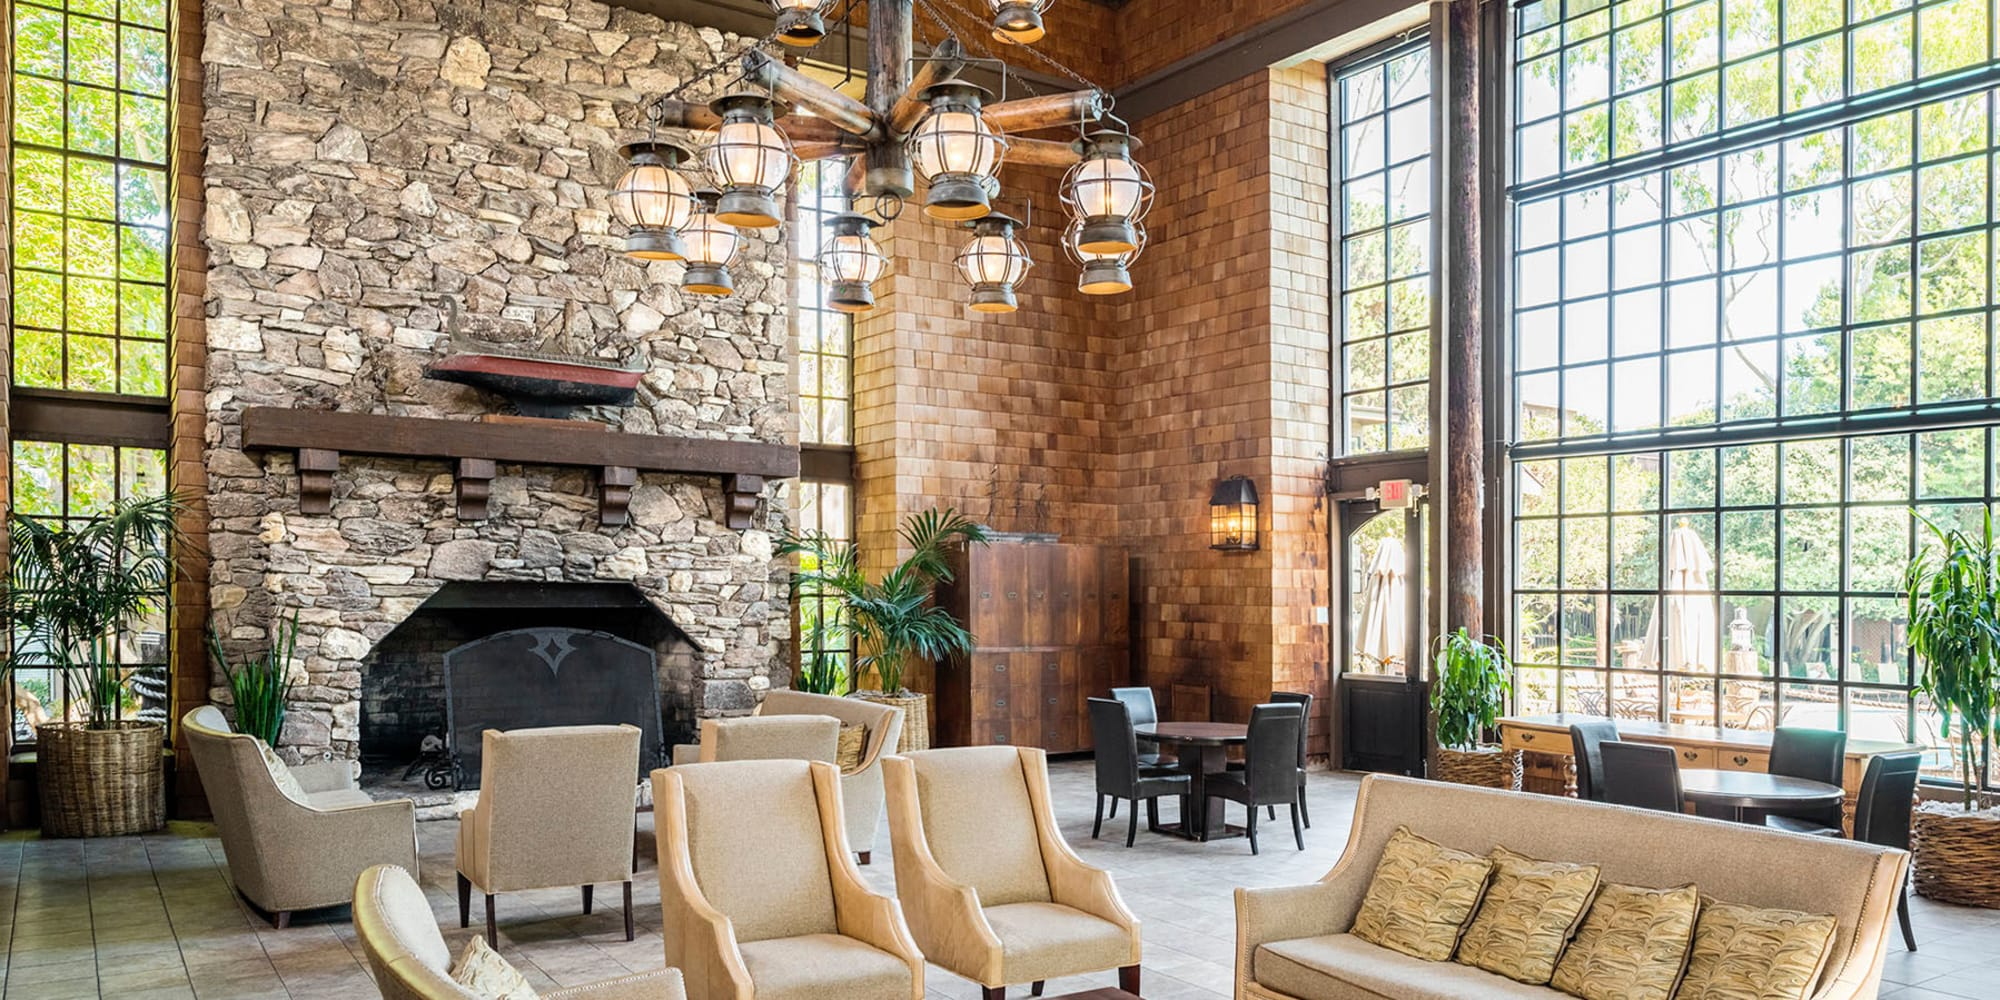 Lounge area in front of the fireplace in the lobby at Mariners Village in Marina del Rey, California